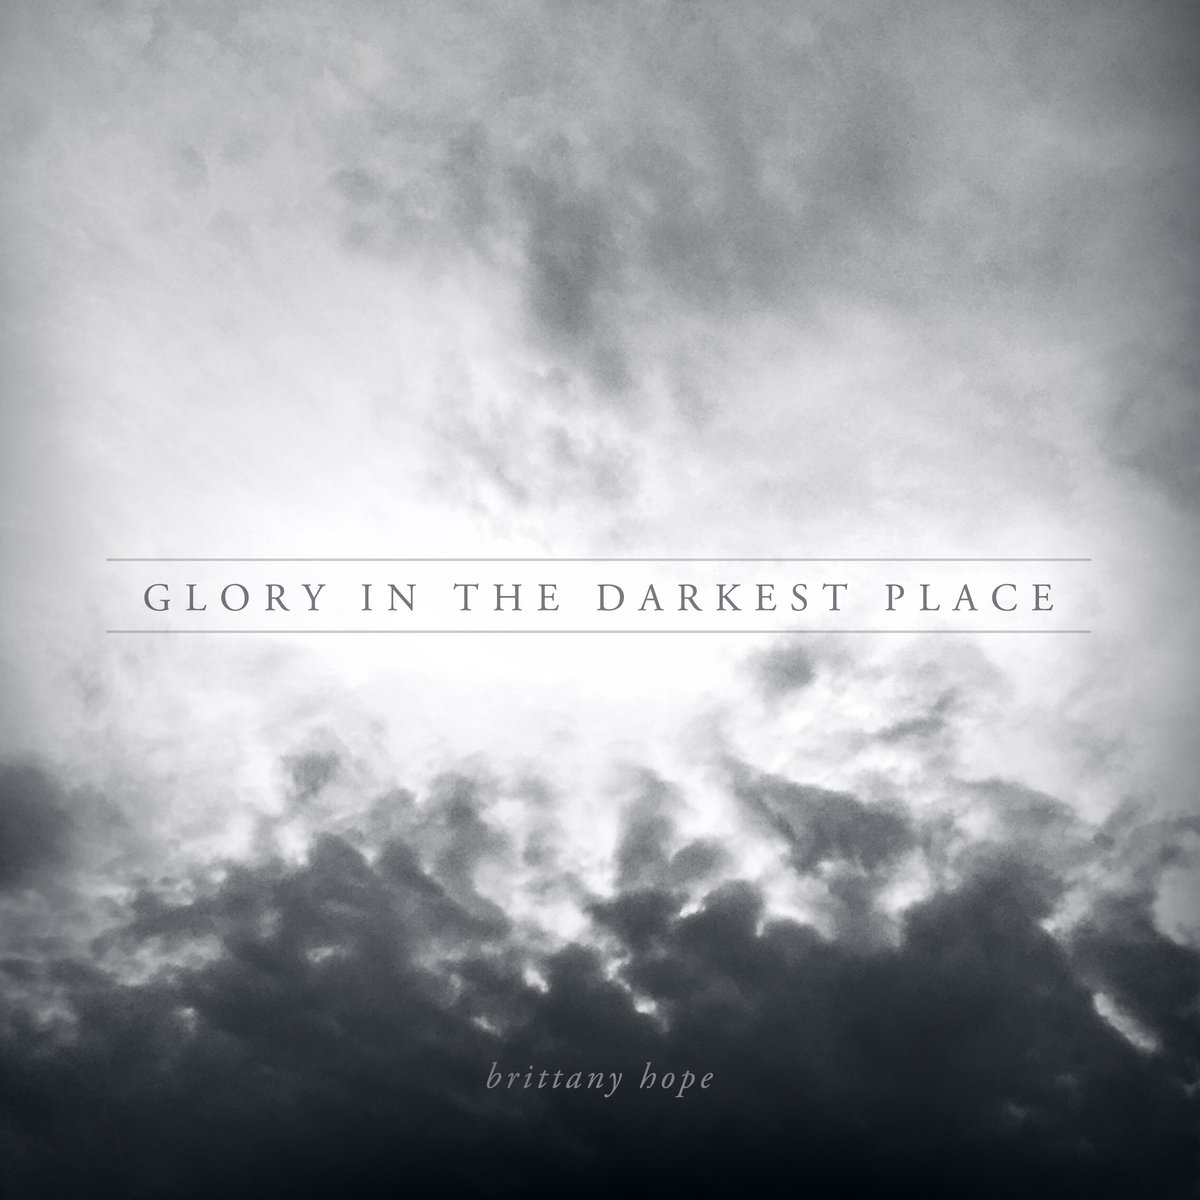 Glory in the Darkest Place | brittany hope